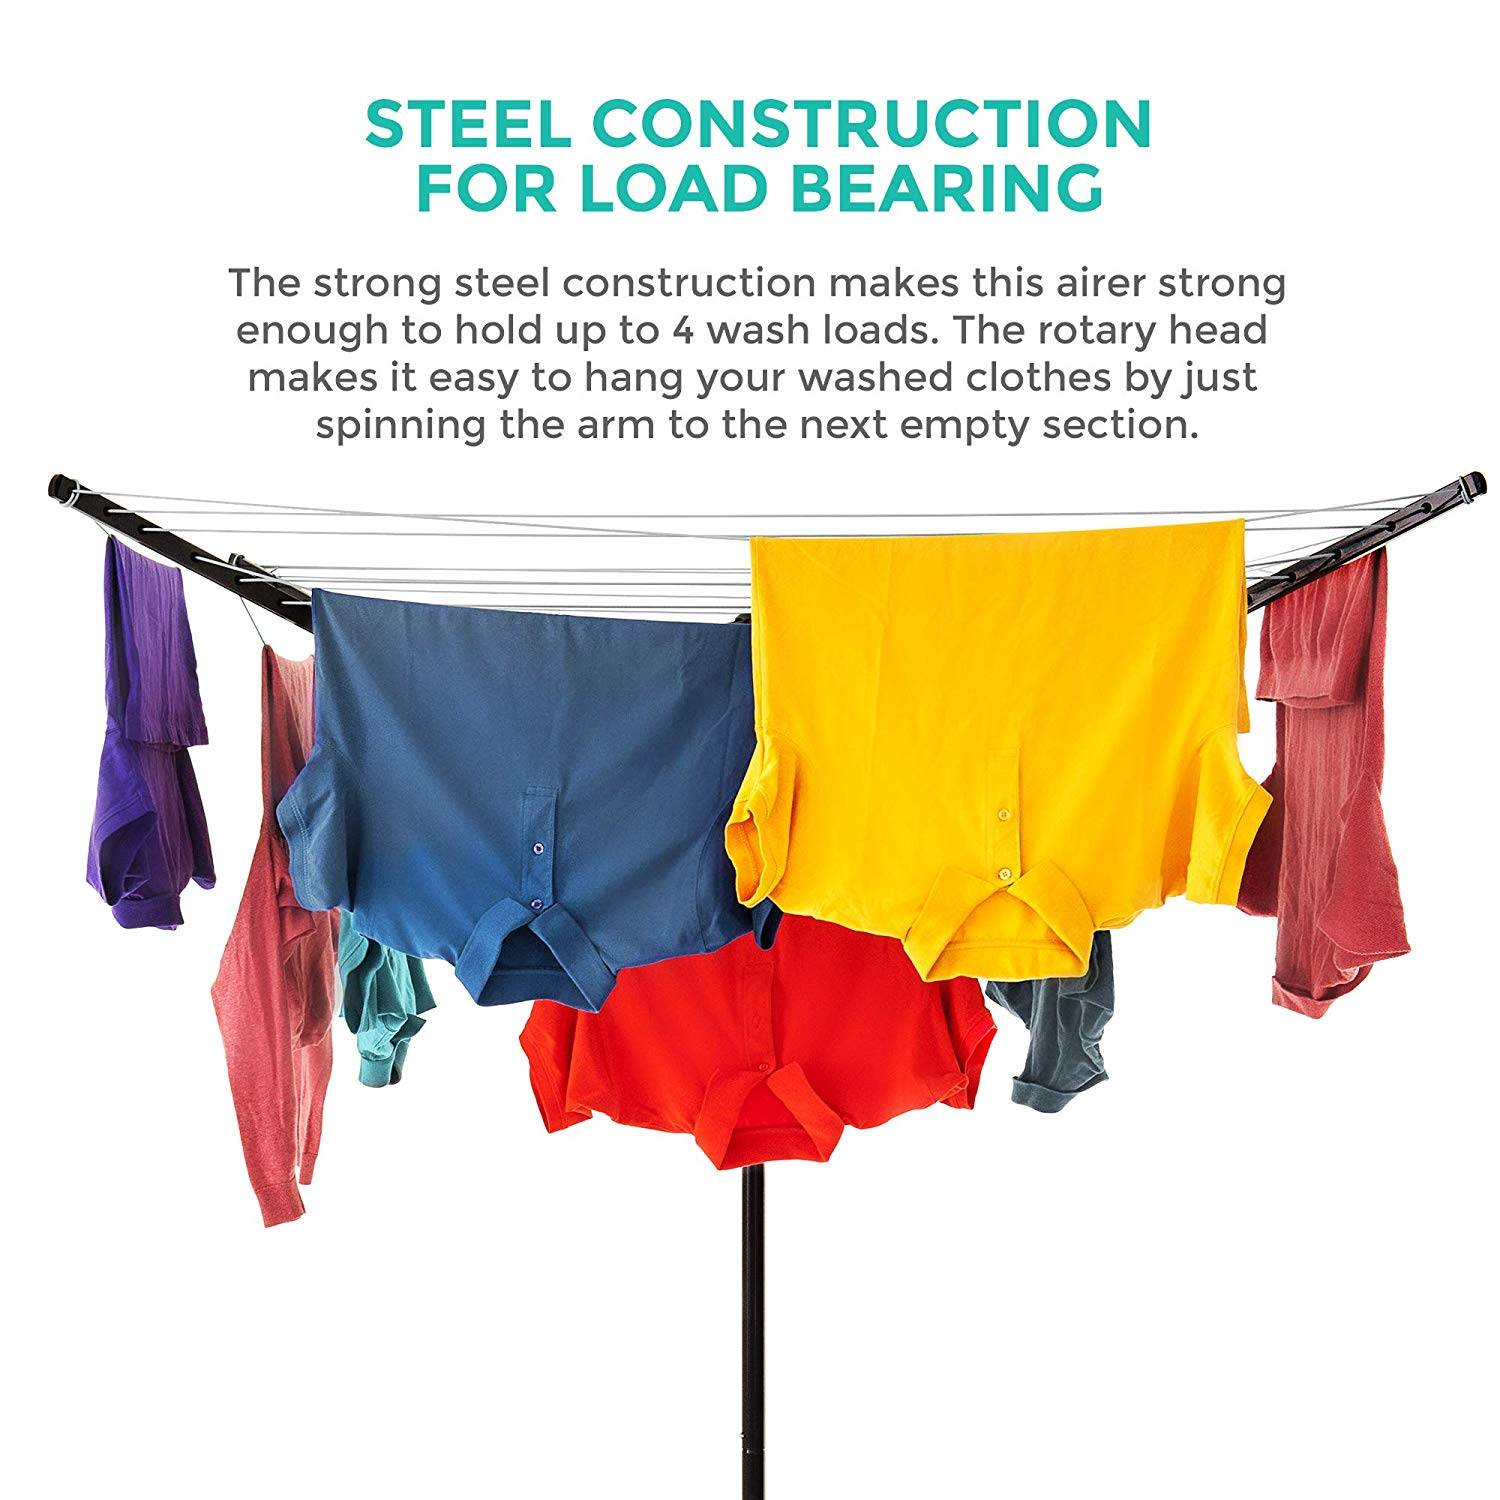 Steel Construction for load bearing